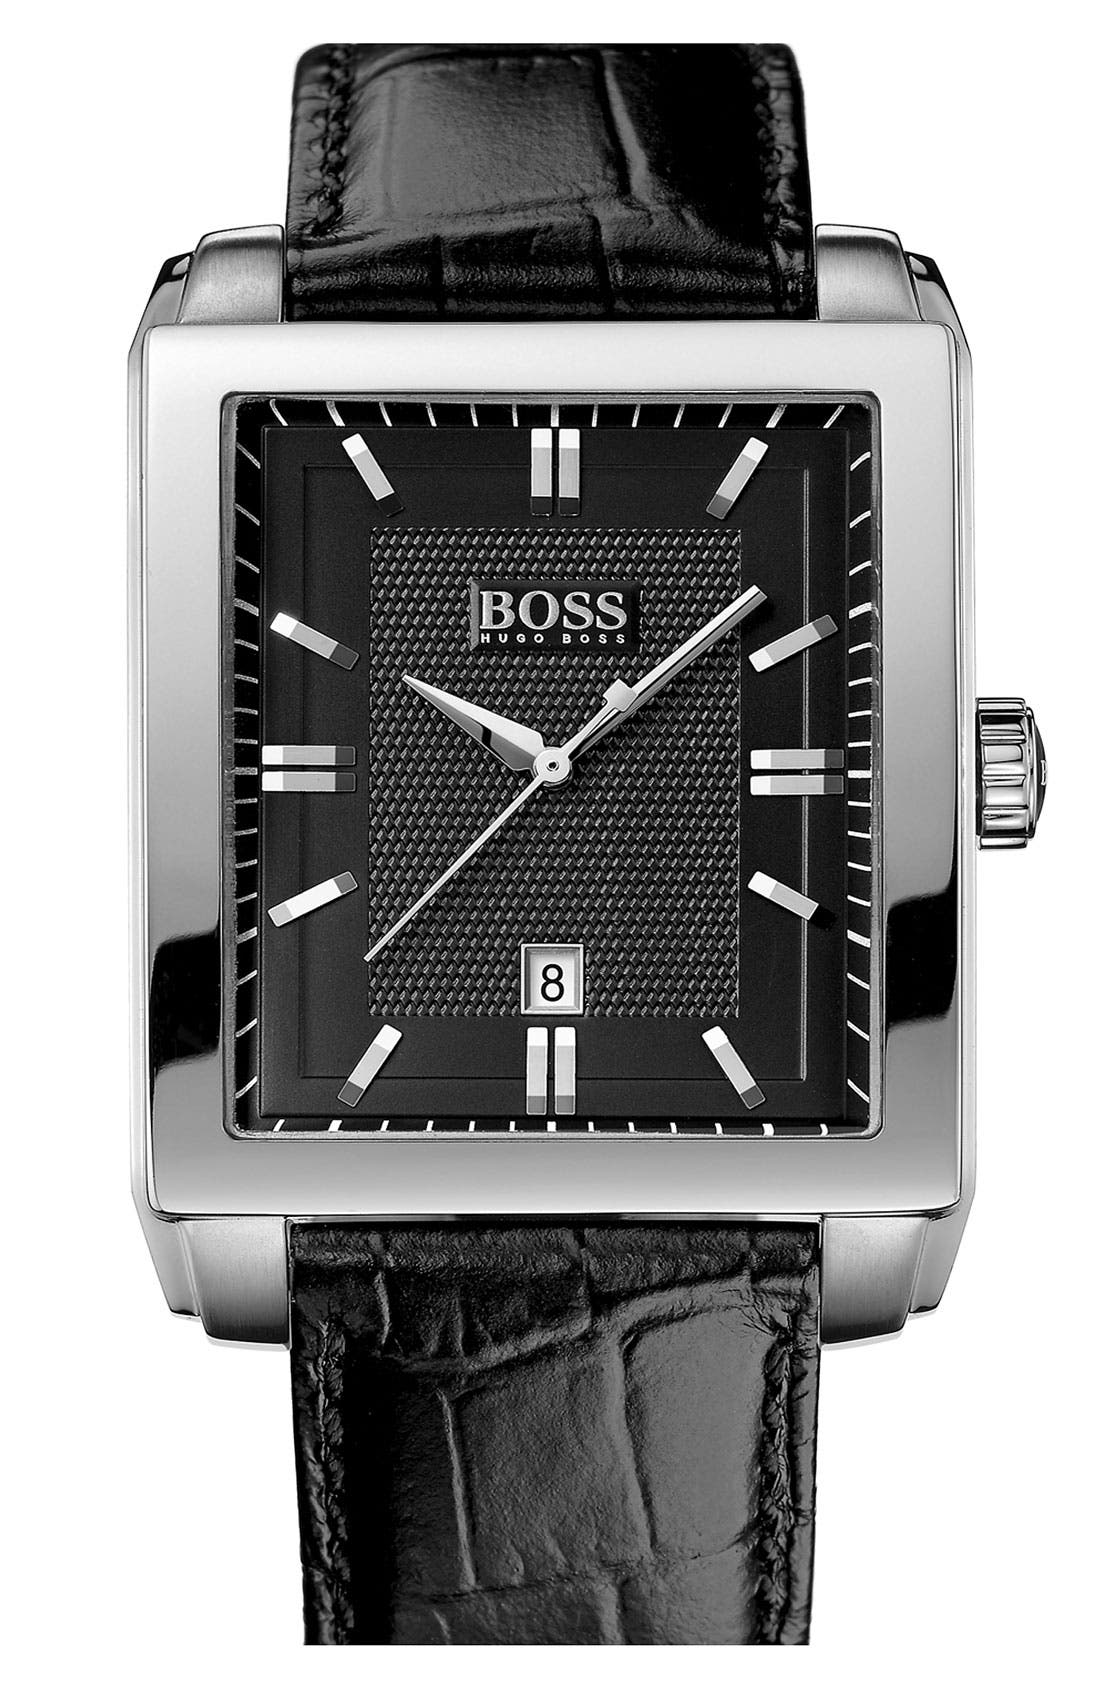 Alternate Image 1 Selected - BOSS HUGO BOSS Rectangular Leather Strap Watch, 35mm x 40mm